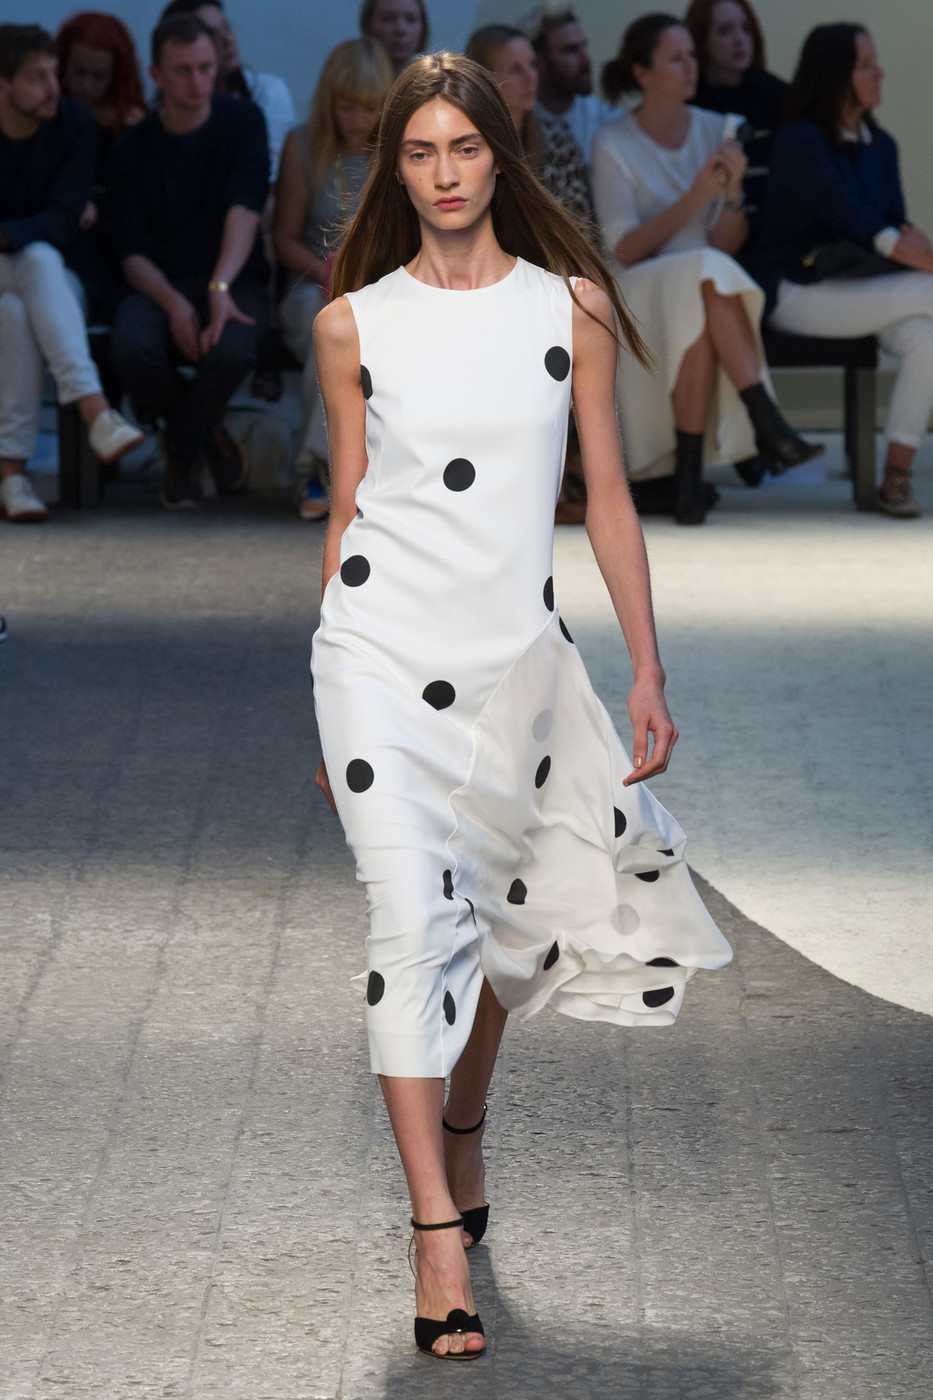 Fashion Trend Report: Polka Dots